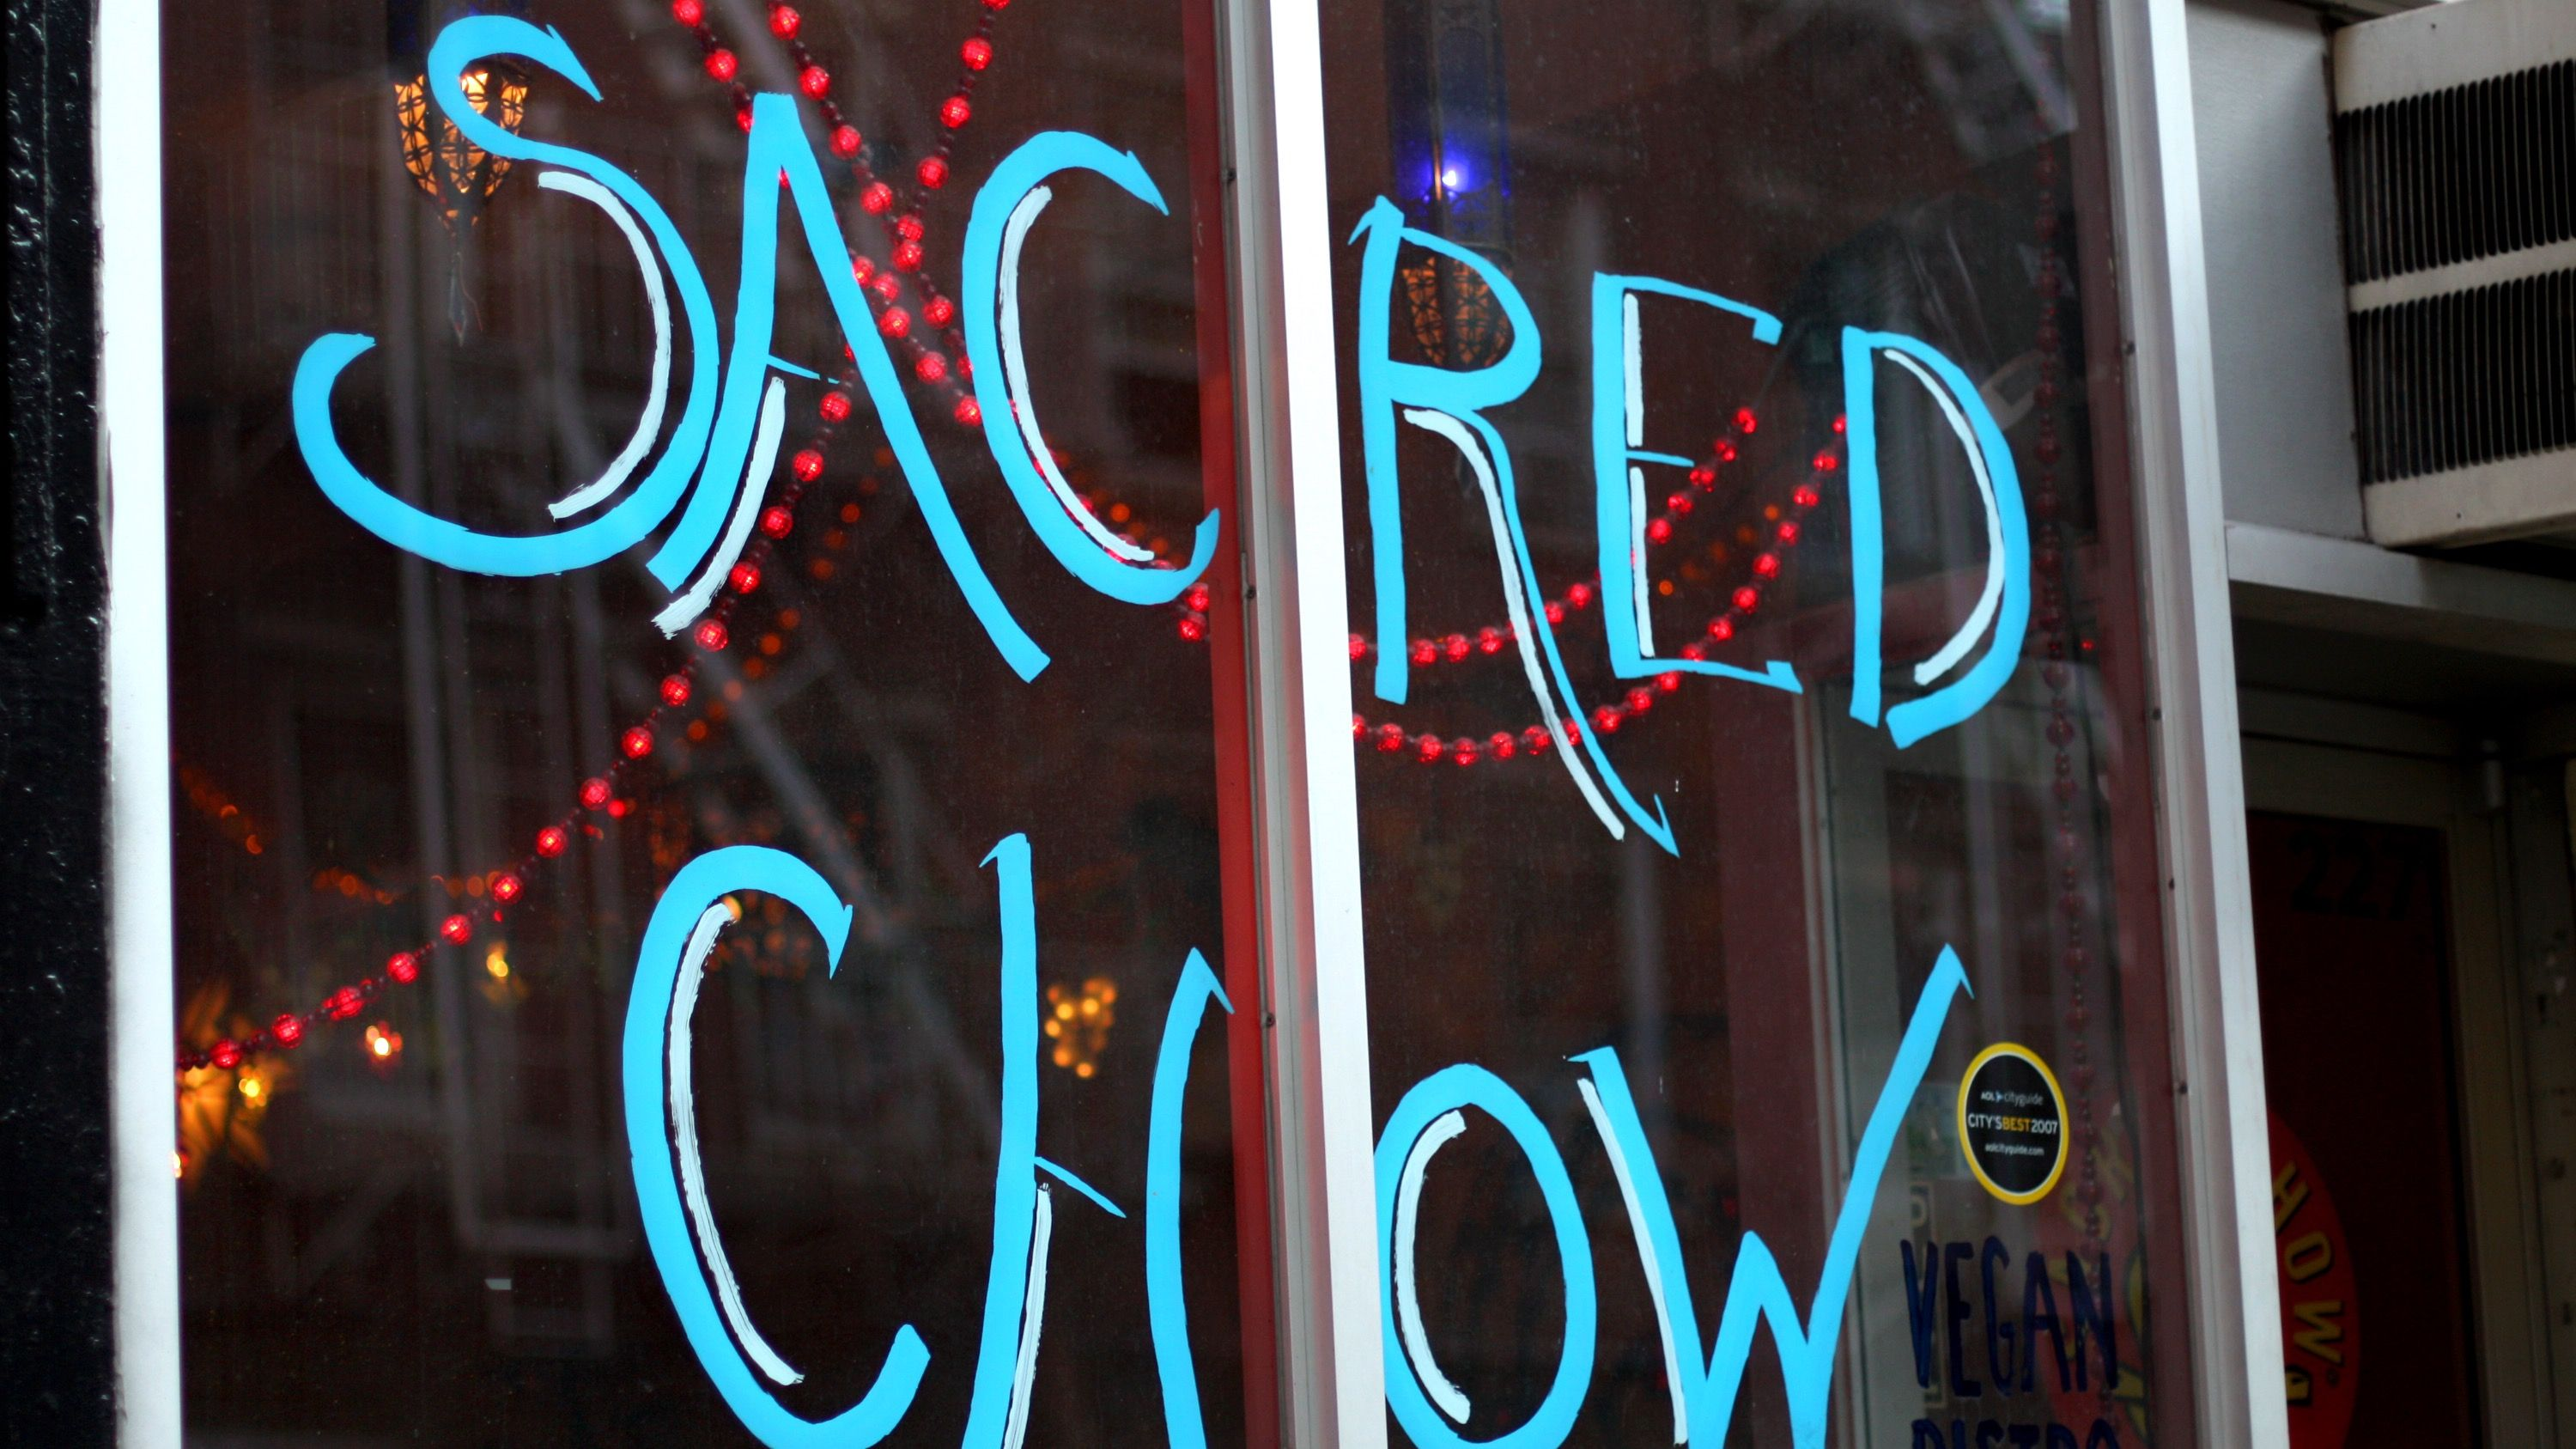 Controversial rabbi makes vegan restaurants kosher the forward the name of the vegan restaurant sacred chow is hand painted on its glass storefront biocorpaavc Image collections